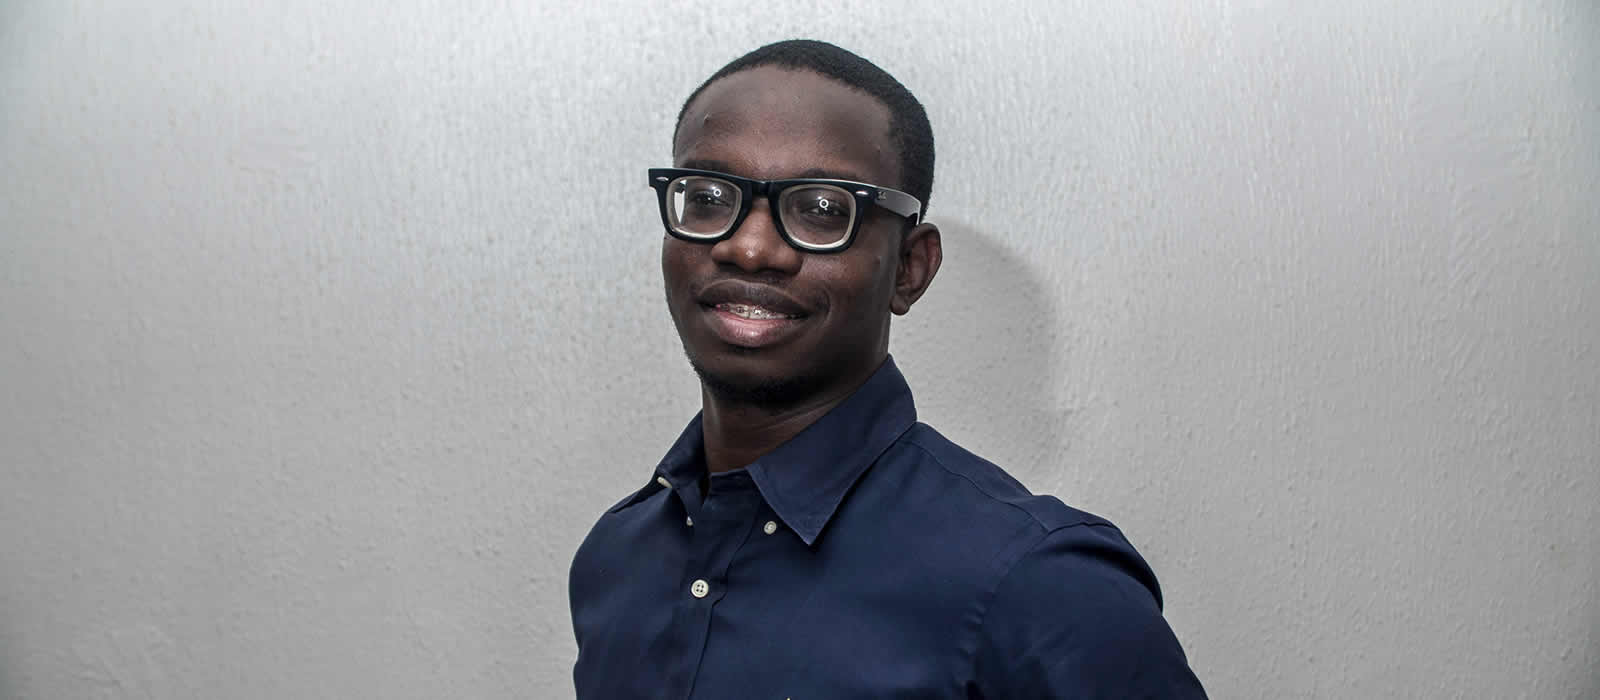 Africana Entrepreneur - MY PASSION KEEPS ME GOING AT DIFFICULT TIMES – ADEBAYO